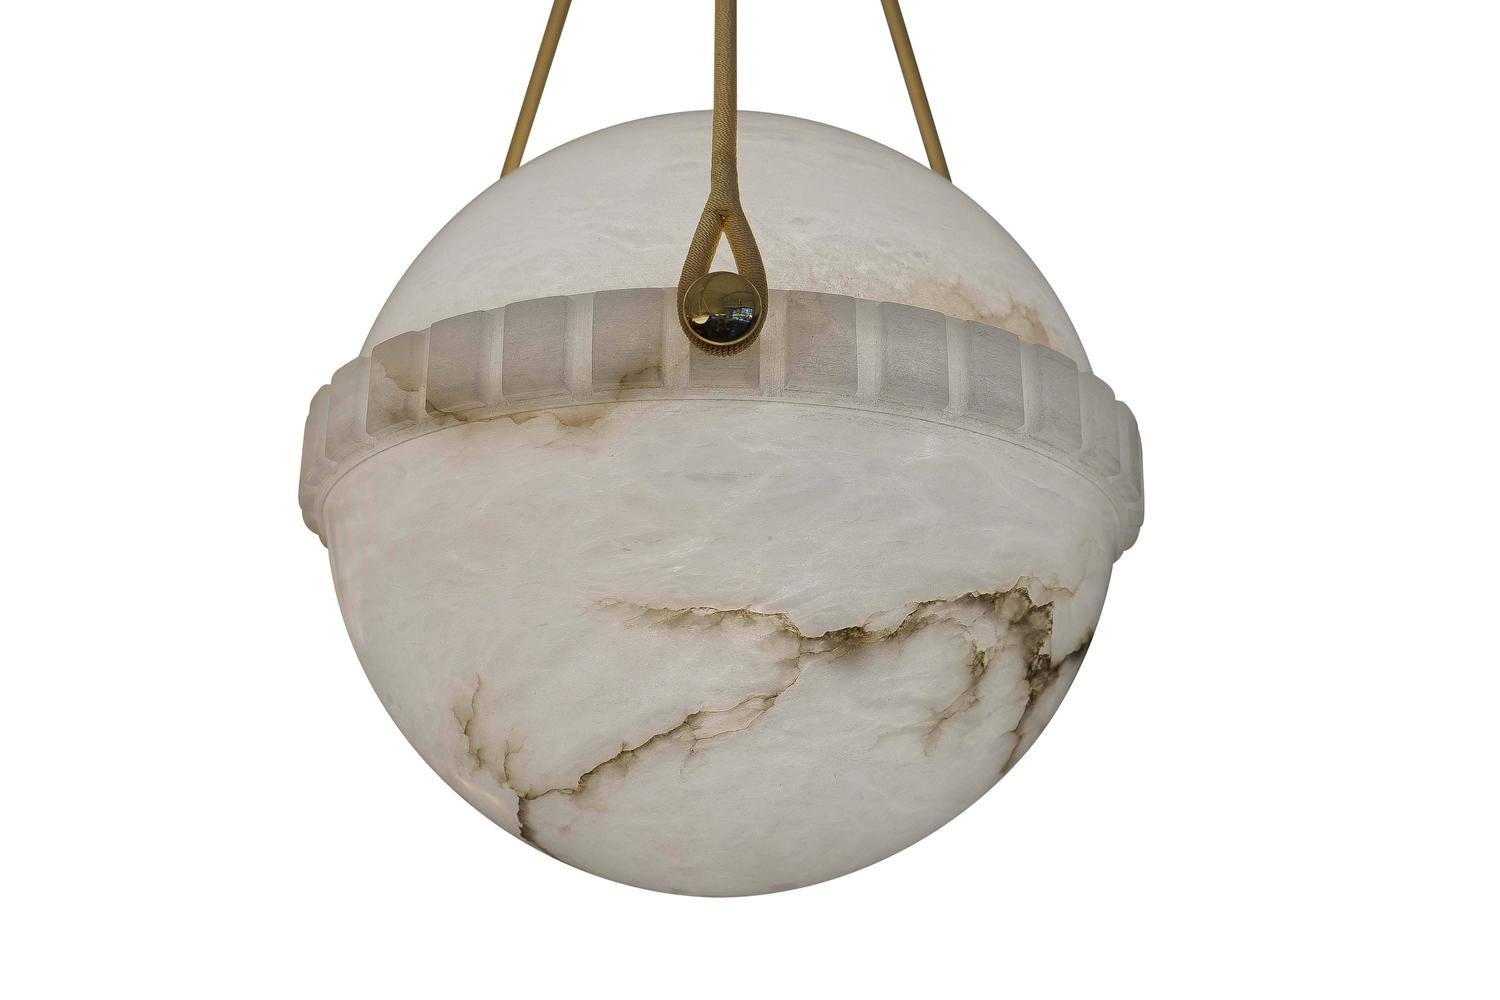 Lighting fixture globes : Swedish alabaster globe light fixture at stdibs